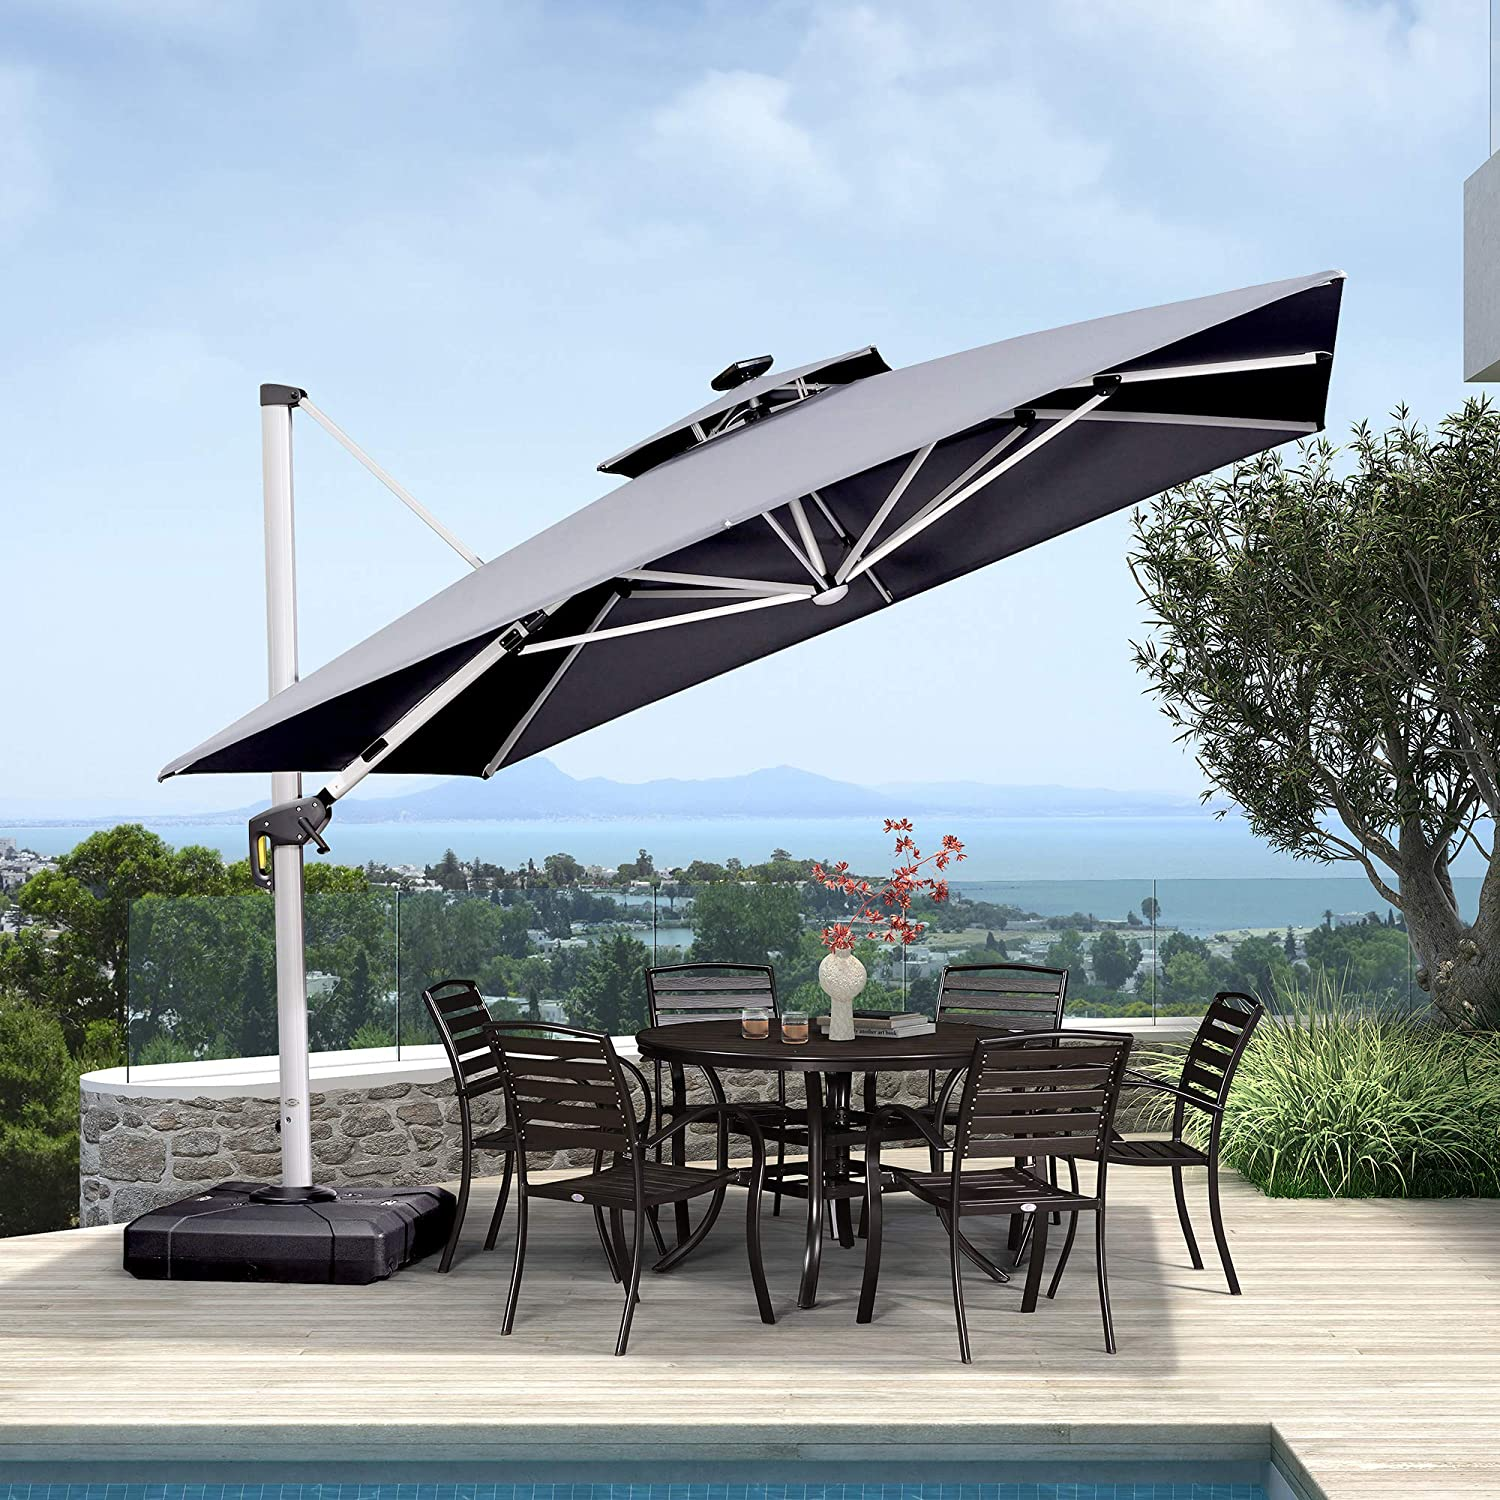 PURPLE LEAF 11 Feet Double Top Deluxe Solar Powered LED Square Patio Umbrella Offset Hanging Umbrella Outdoor Market Umbrella Garden Umbrella, Grey